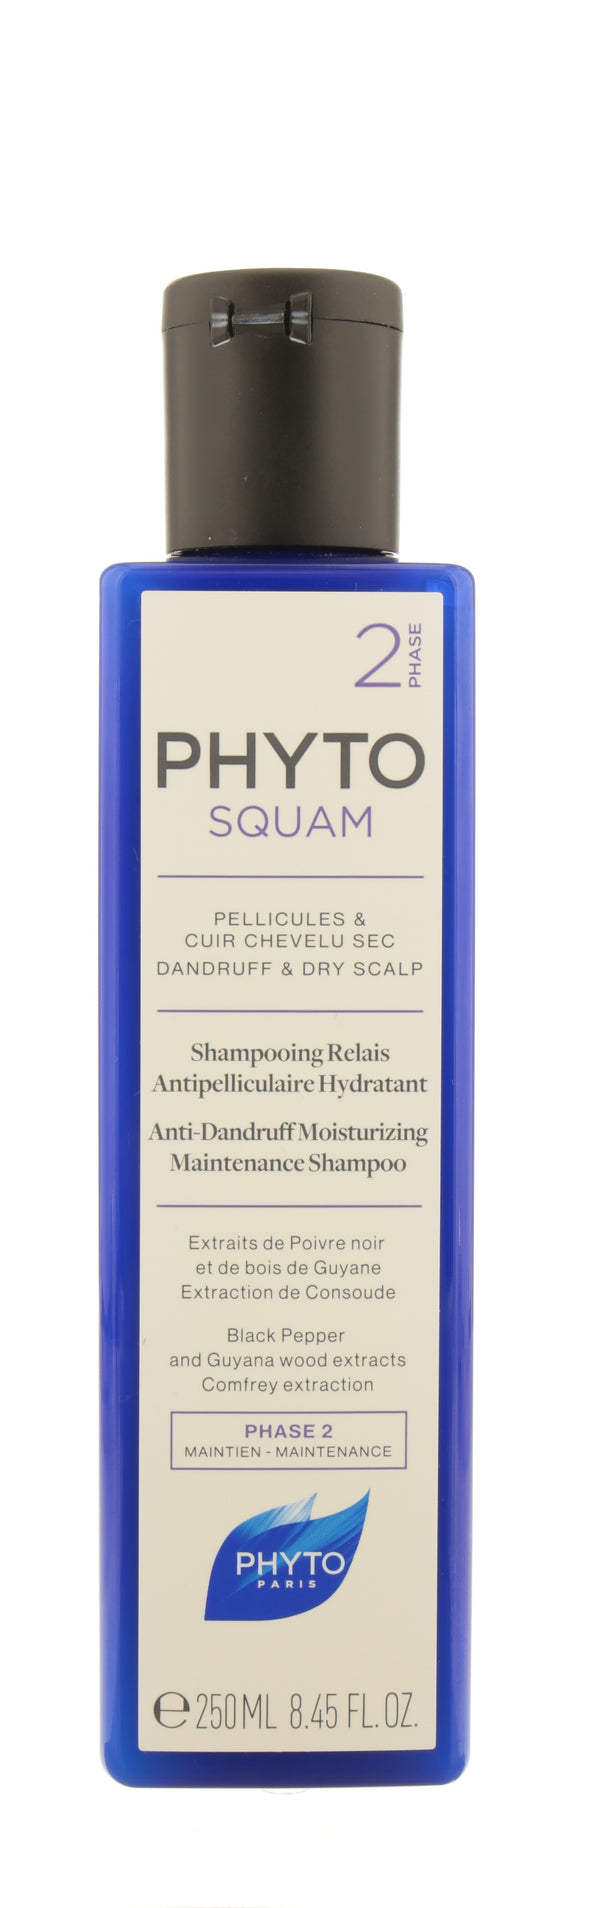 PHYTO Phytosquam Anti-Dandruff Hydrating Shampoo